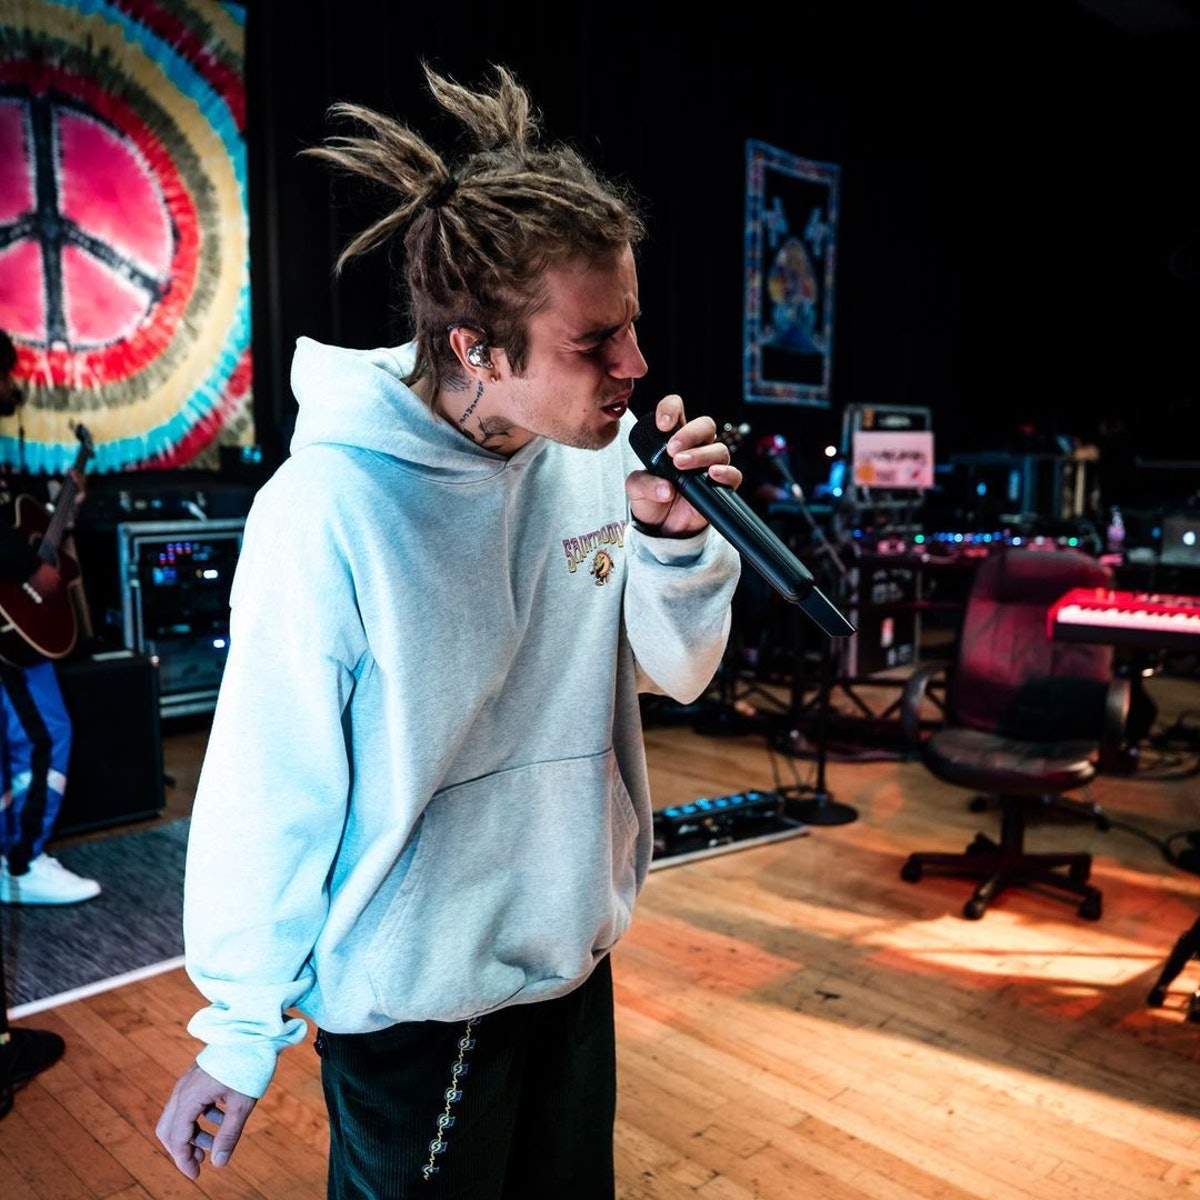 Justin Bieber wearing his dreads in pigtails